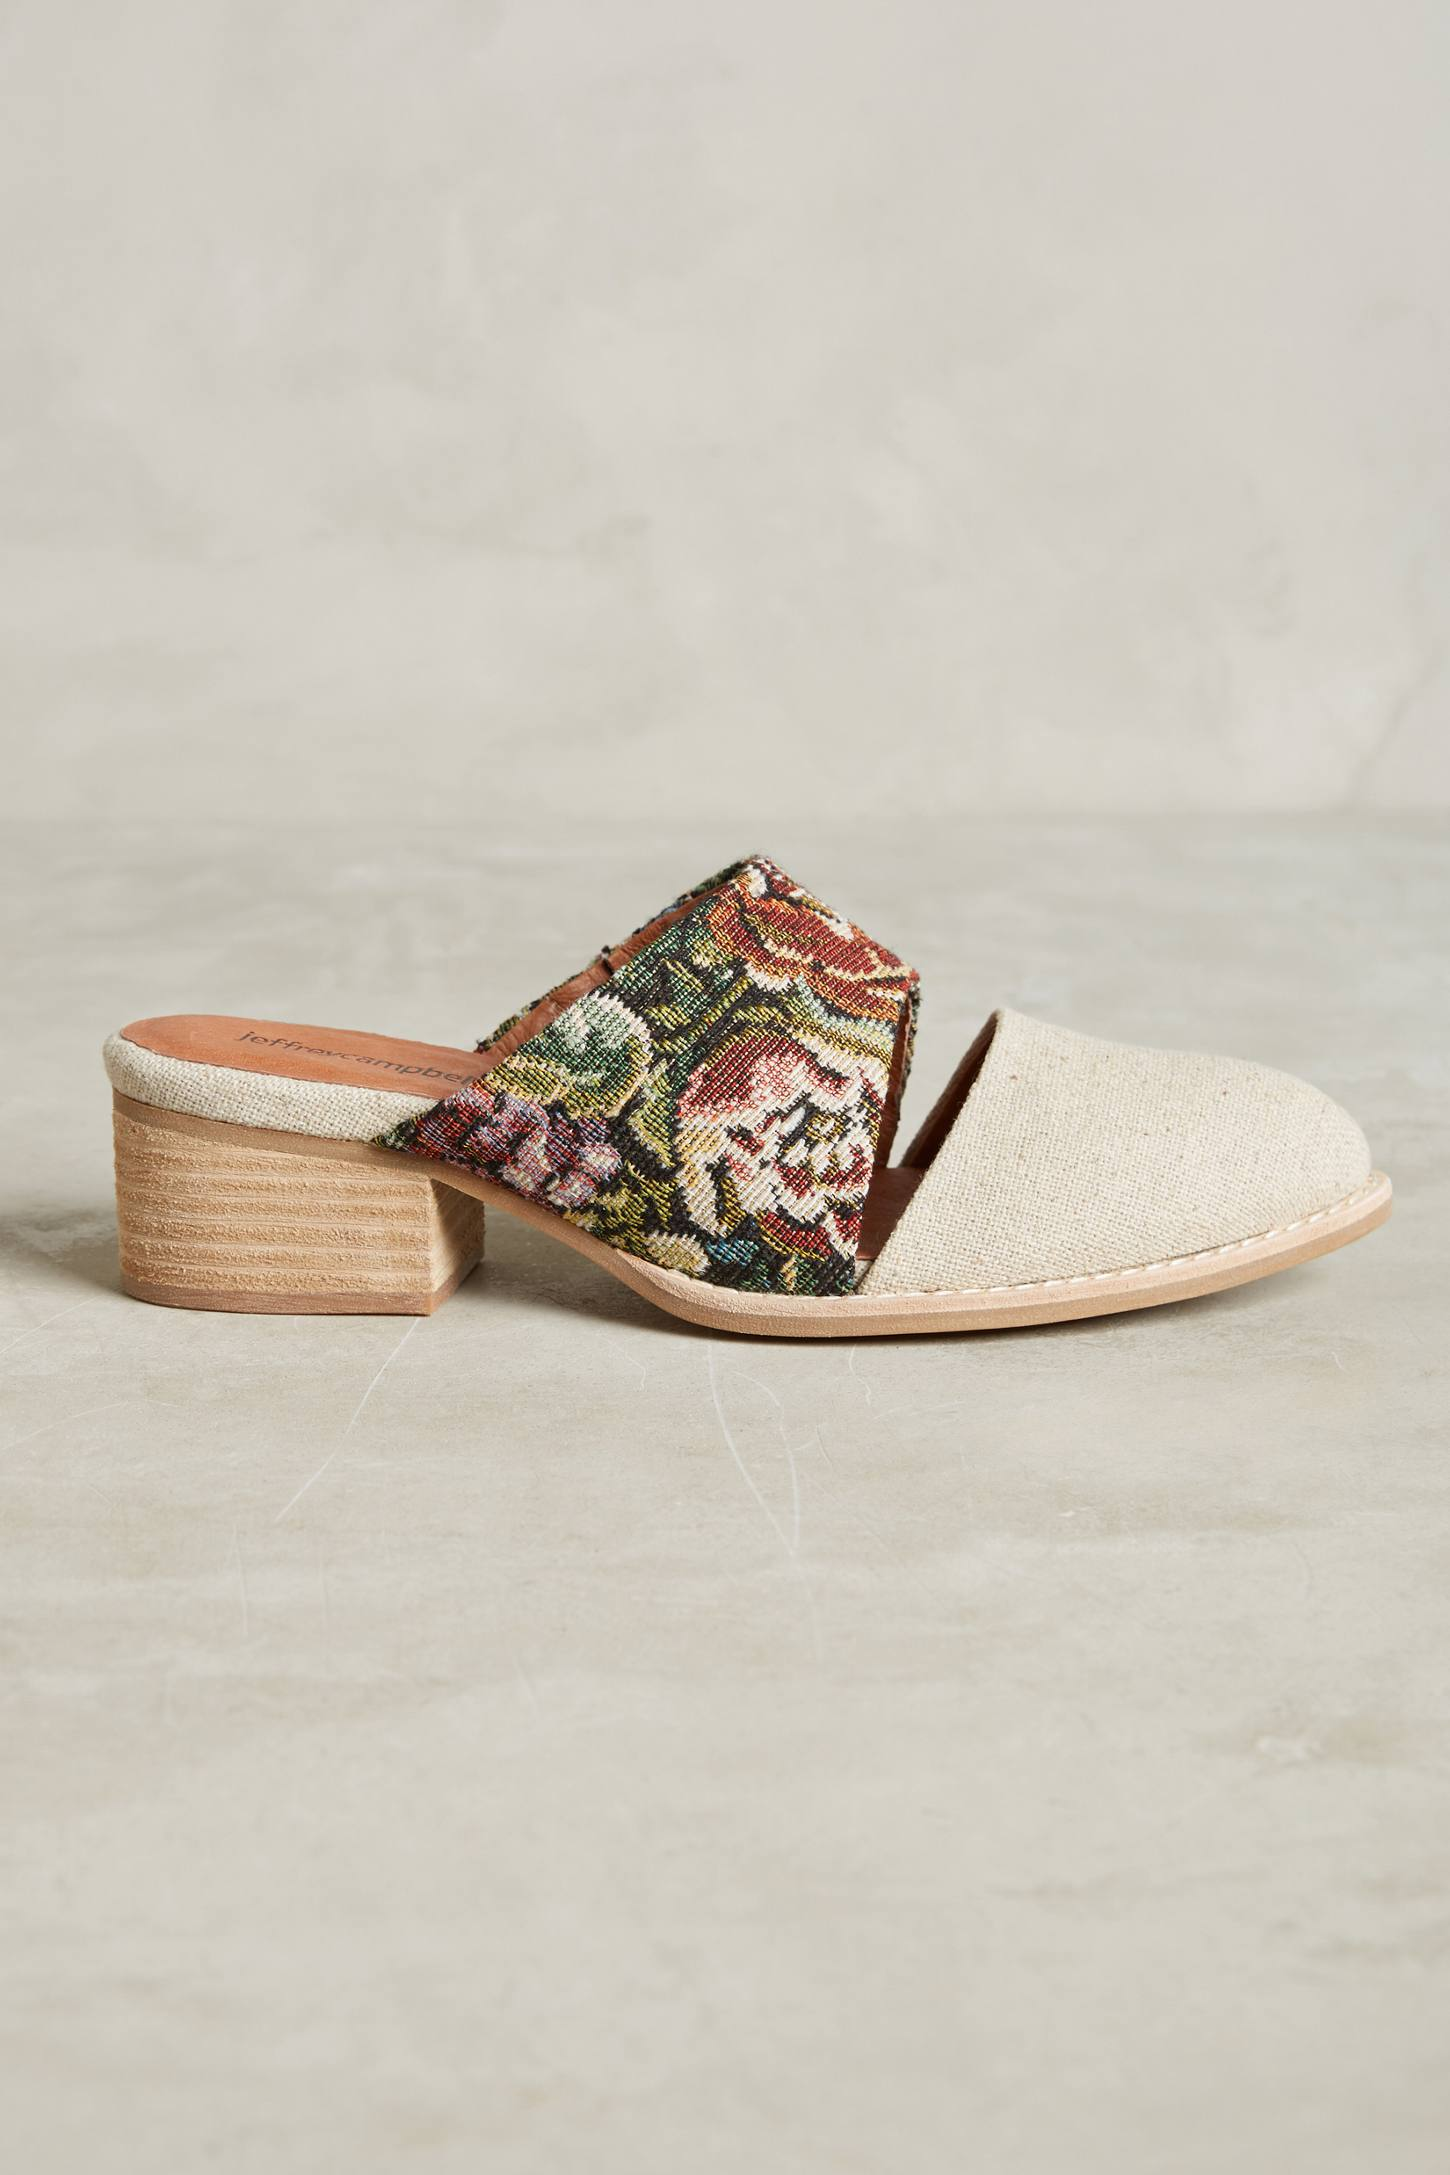 Slide View: 2: Jeffrey Campbell Tapestry Mules